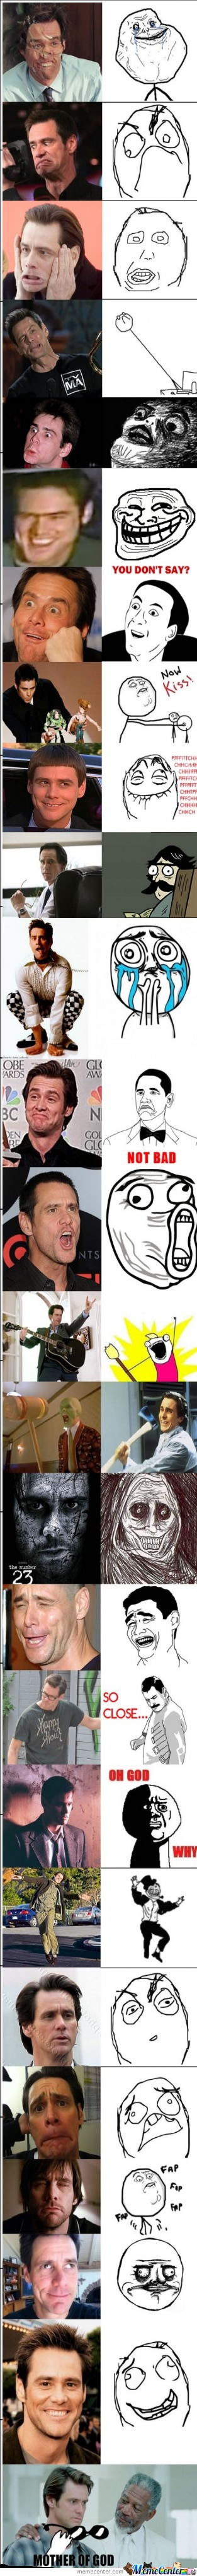 The Many Faces Of Jim Carrey as Rage Faces